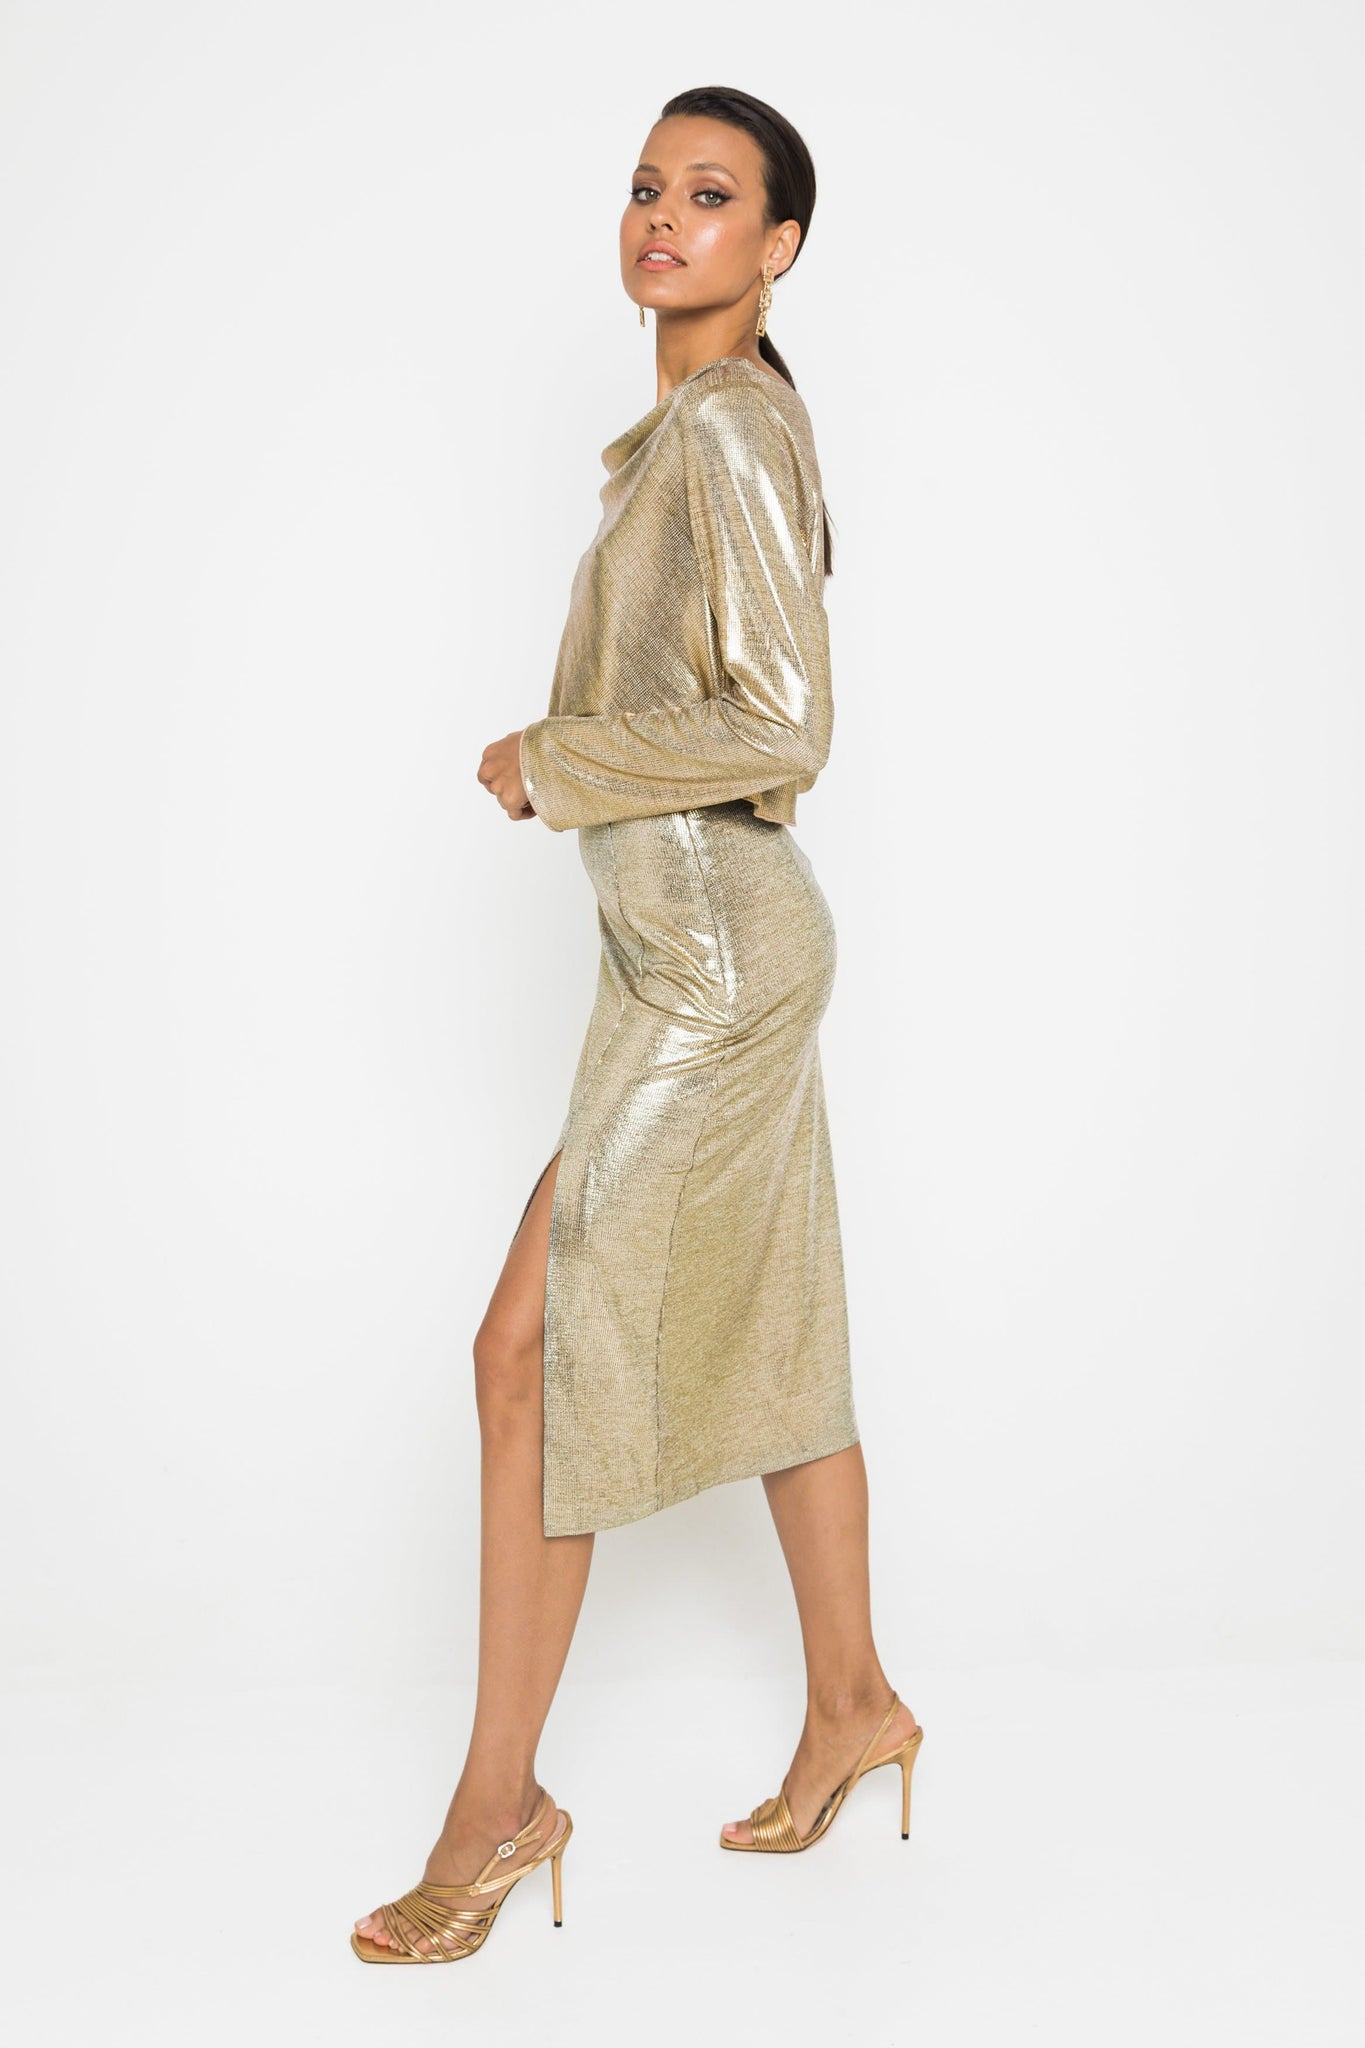 The Golden Era Skirt